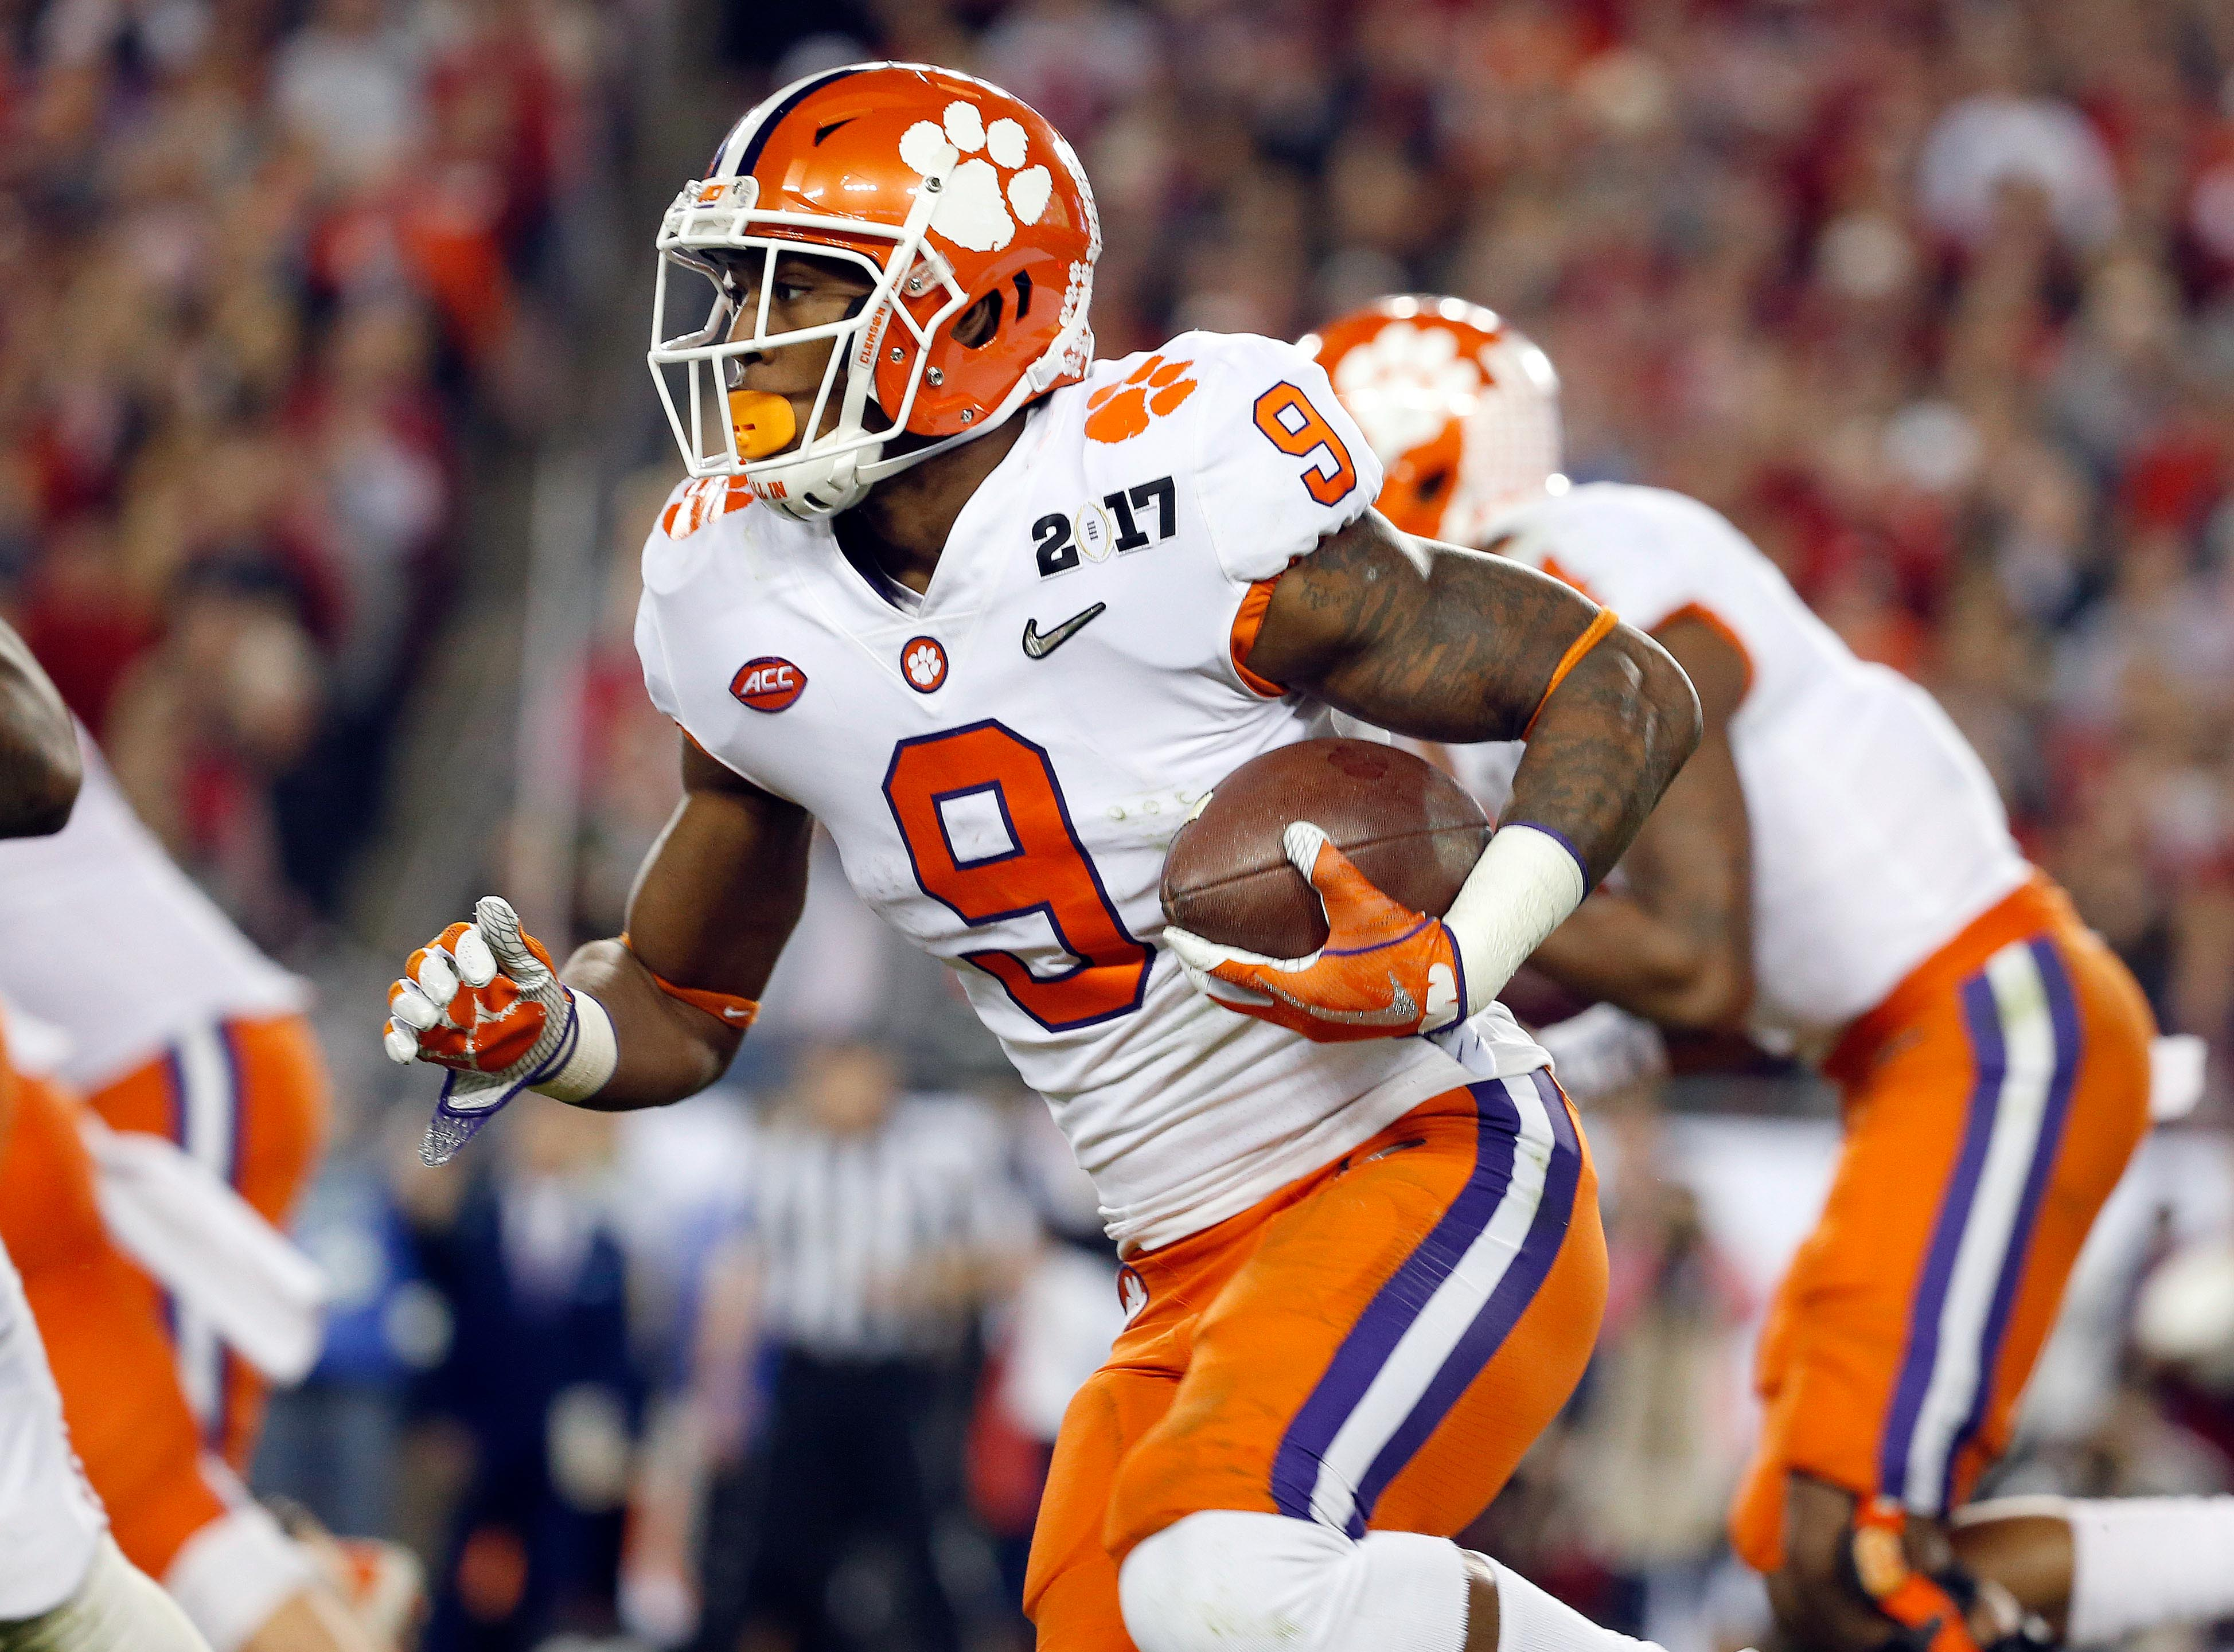 clemson football wayne tigers running gallman nfl giants alabama vikings college championship national ncaa ball backs security draft backfield runs